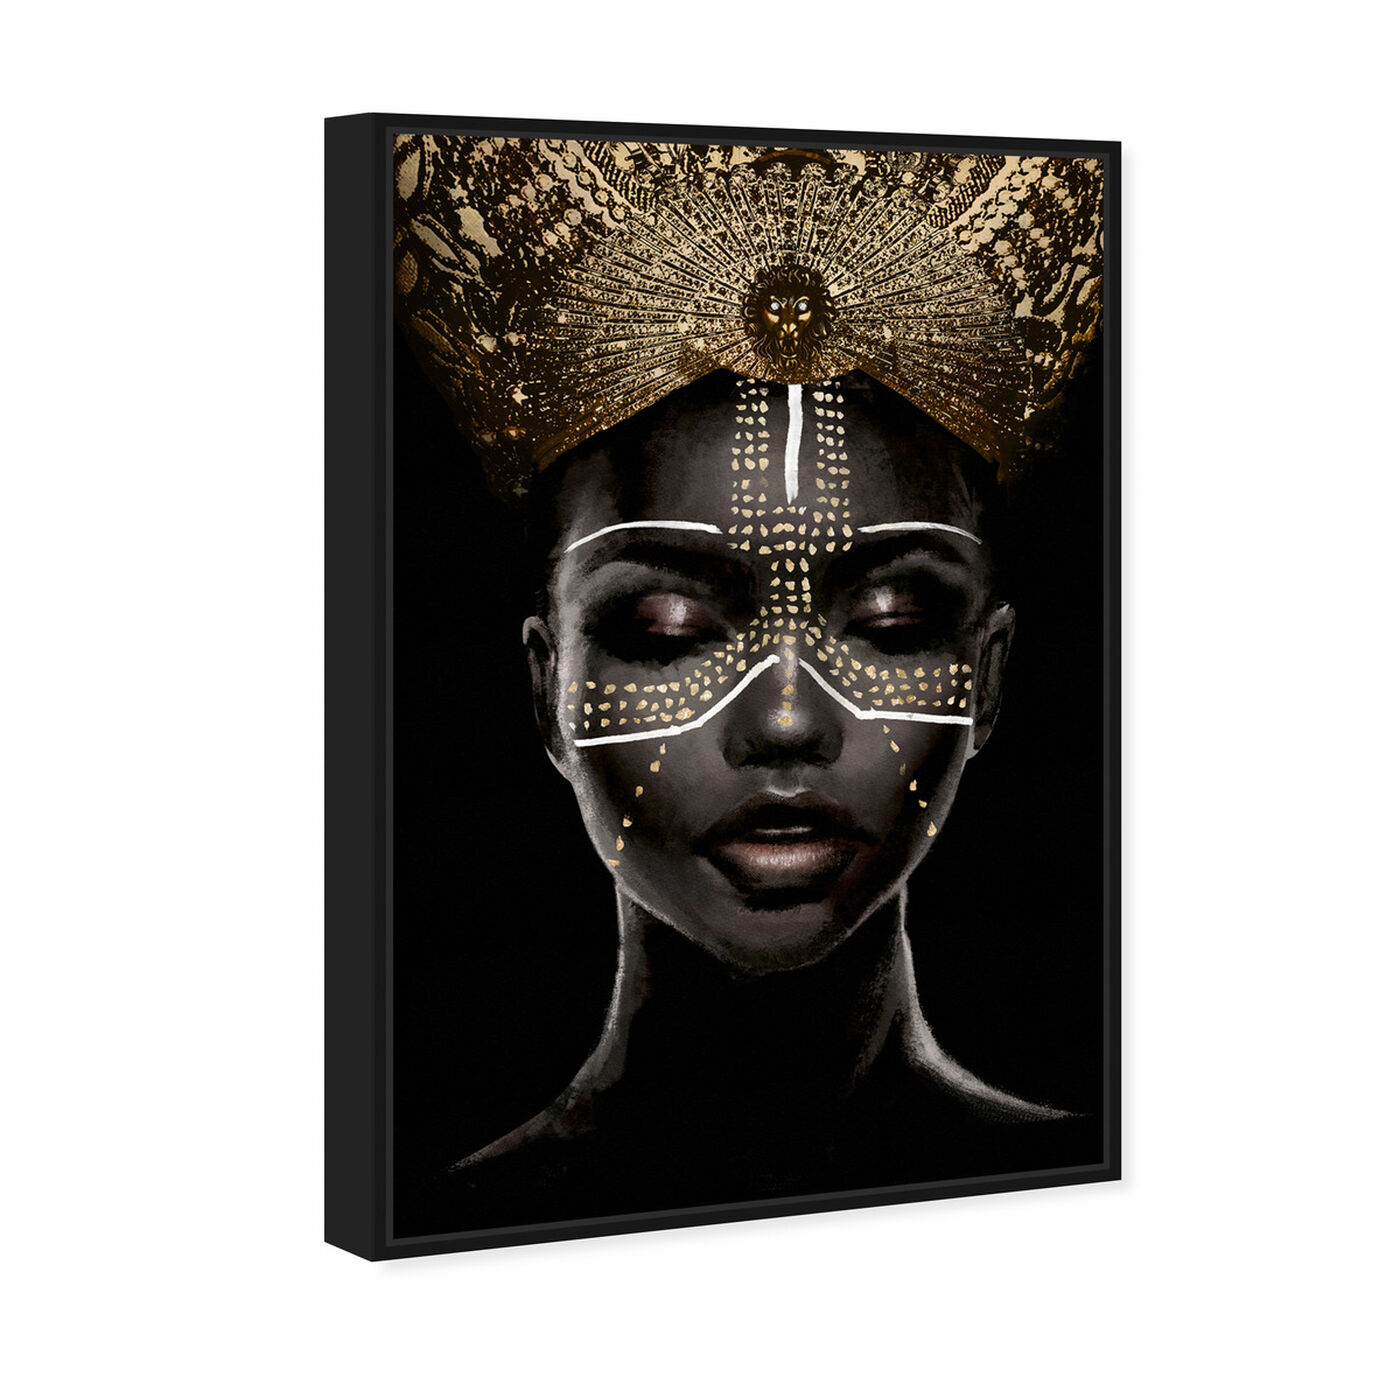 Angled view of Queenly Reign of Gold II featuring fashion and glam and portraits art.